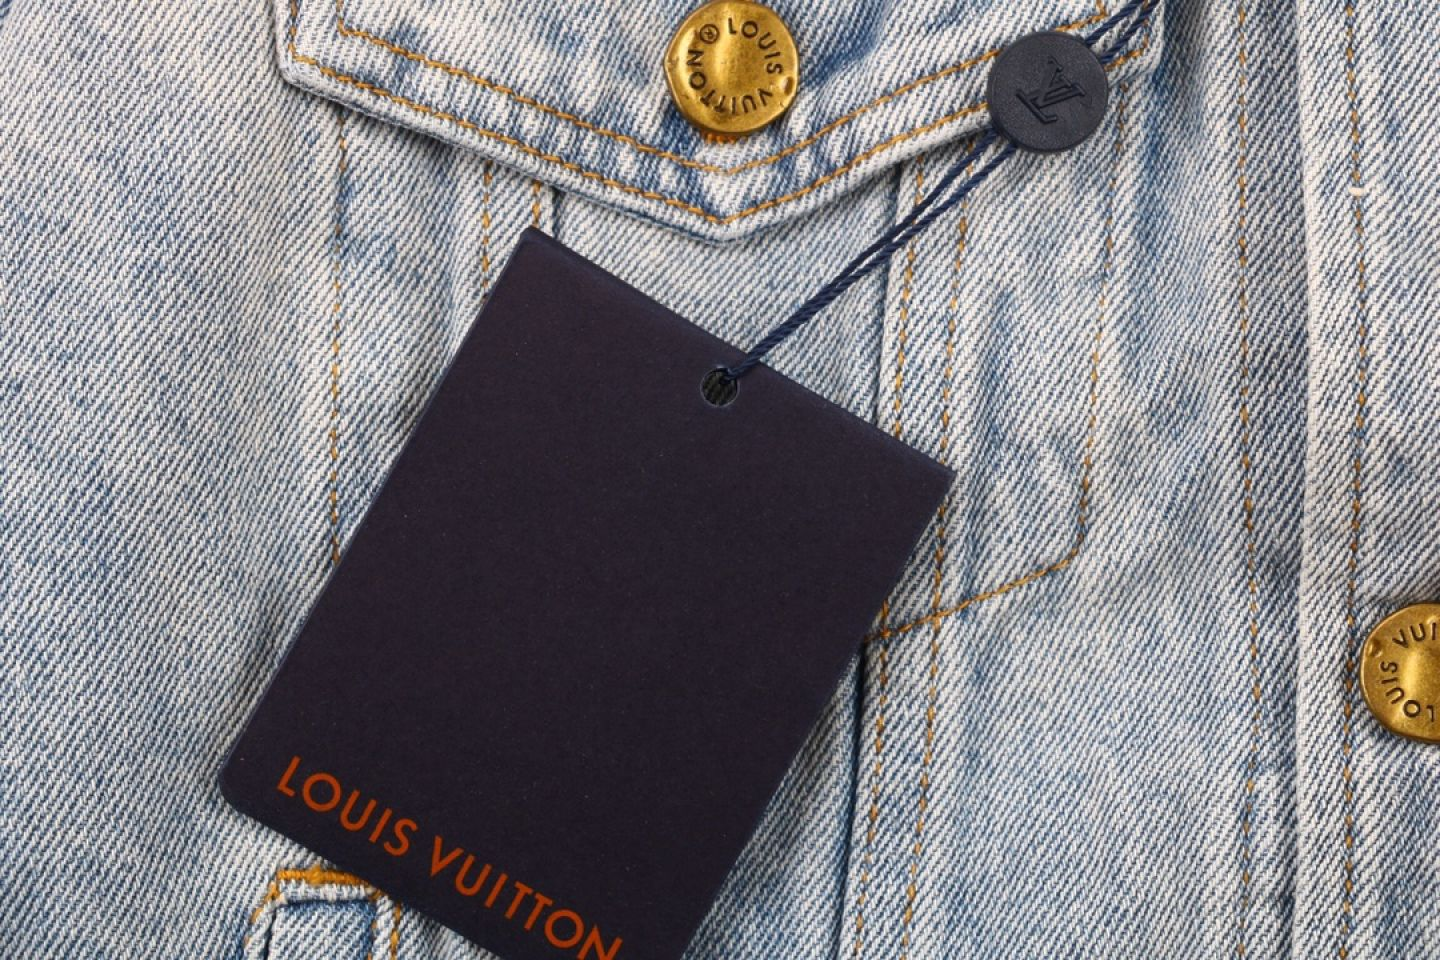 Jacket Louis Vuitton 20fw wash list vintage denim jacket 3 louis_vuitton_20fw_wash_list_vintage_denim_jacket_3